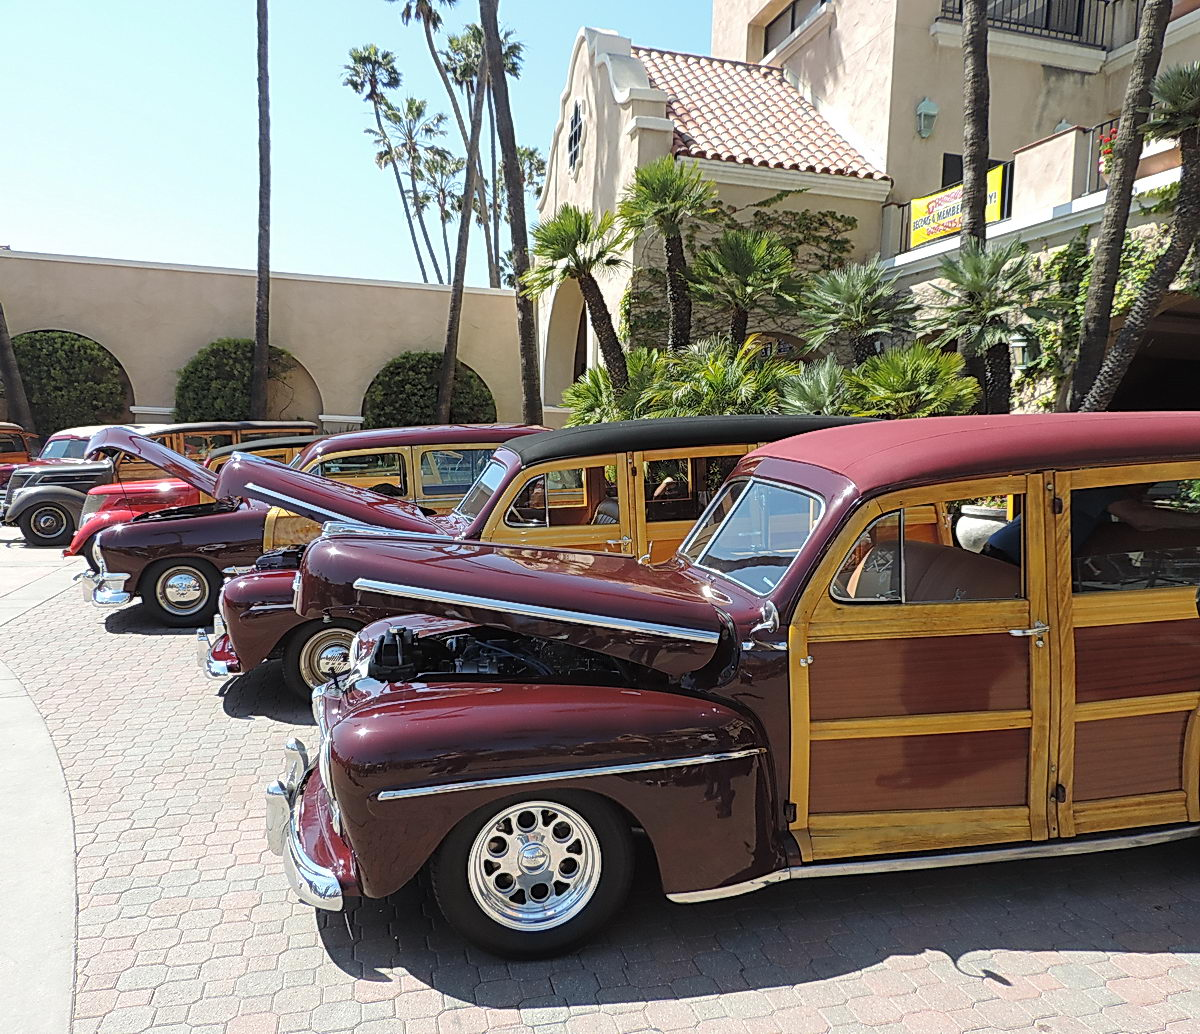 Fun Times At Goodguys Del Mar Car Show EBay Motors Blog - Good guys motors